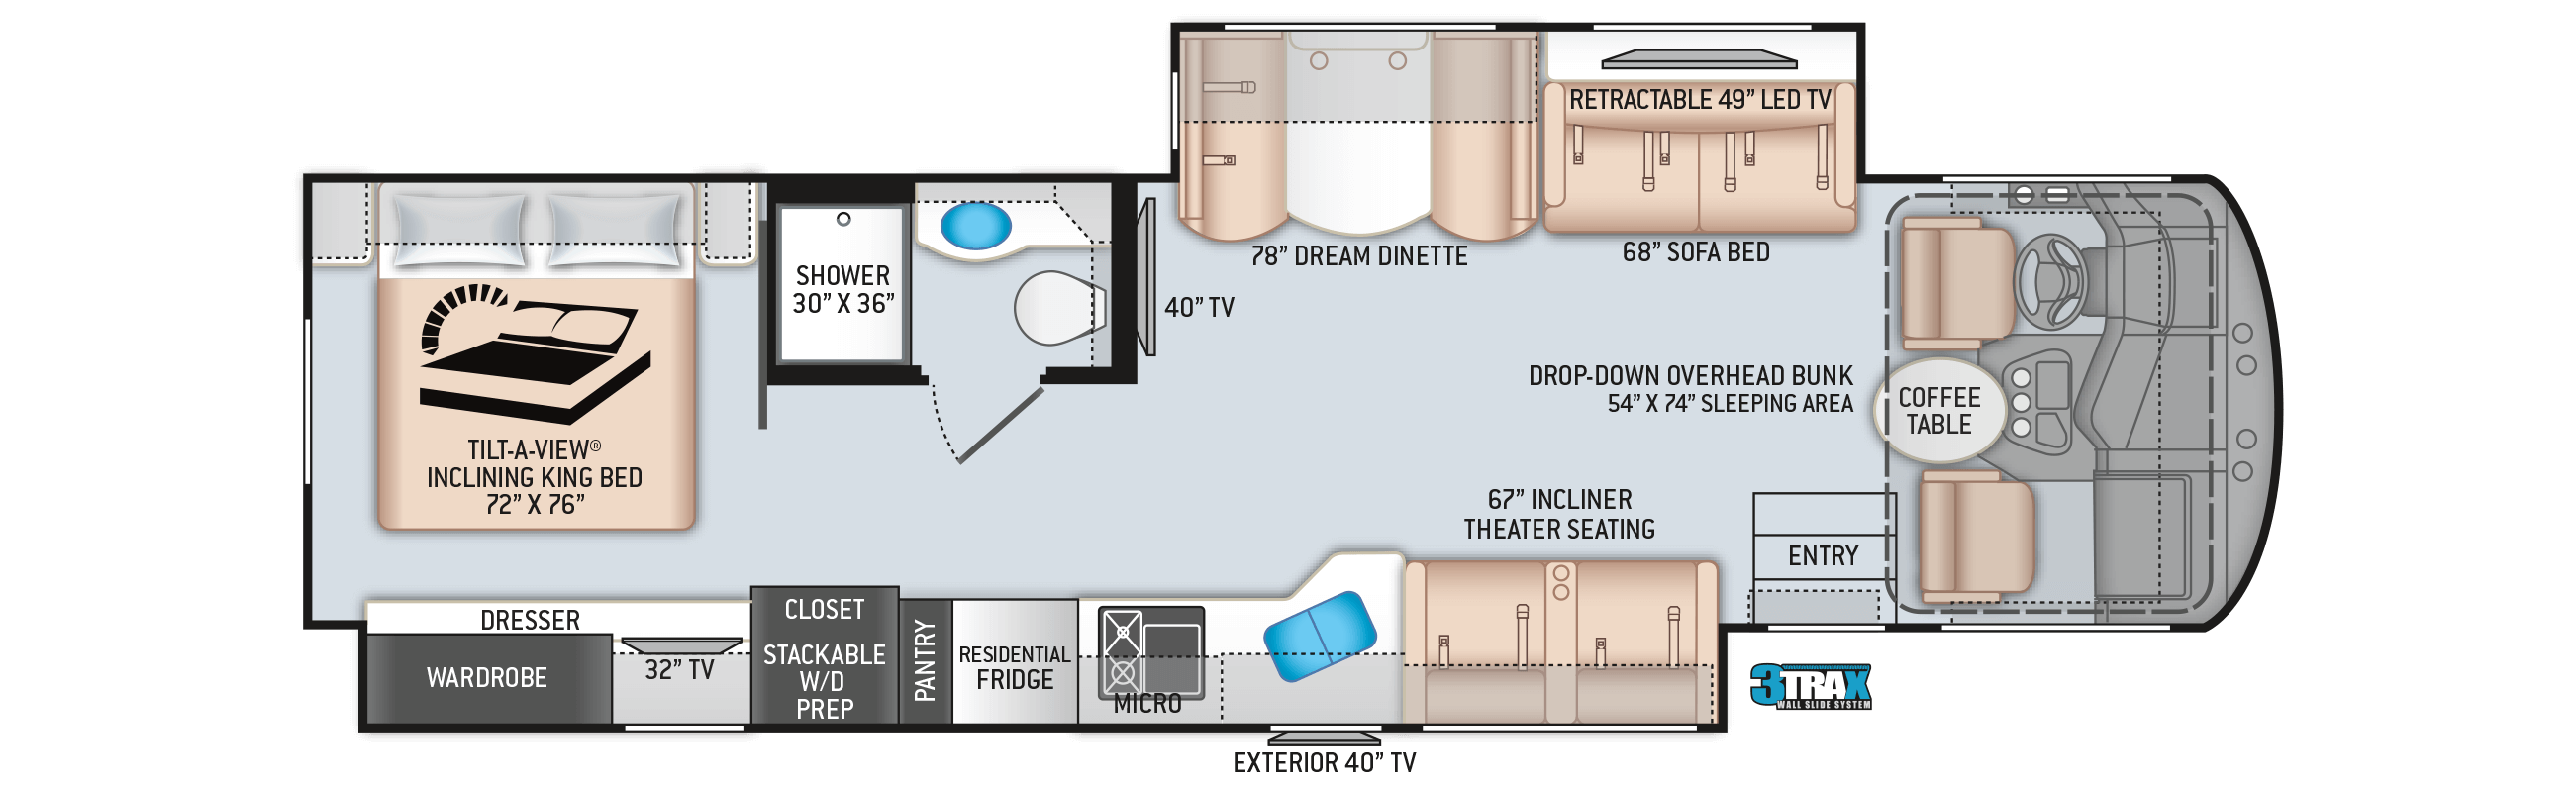 Miramar 35.2 Floor Plan